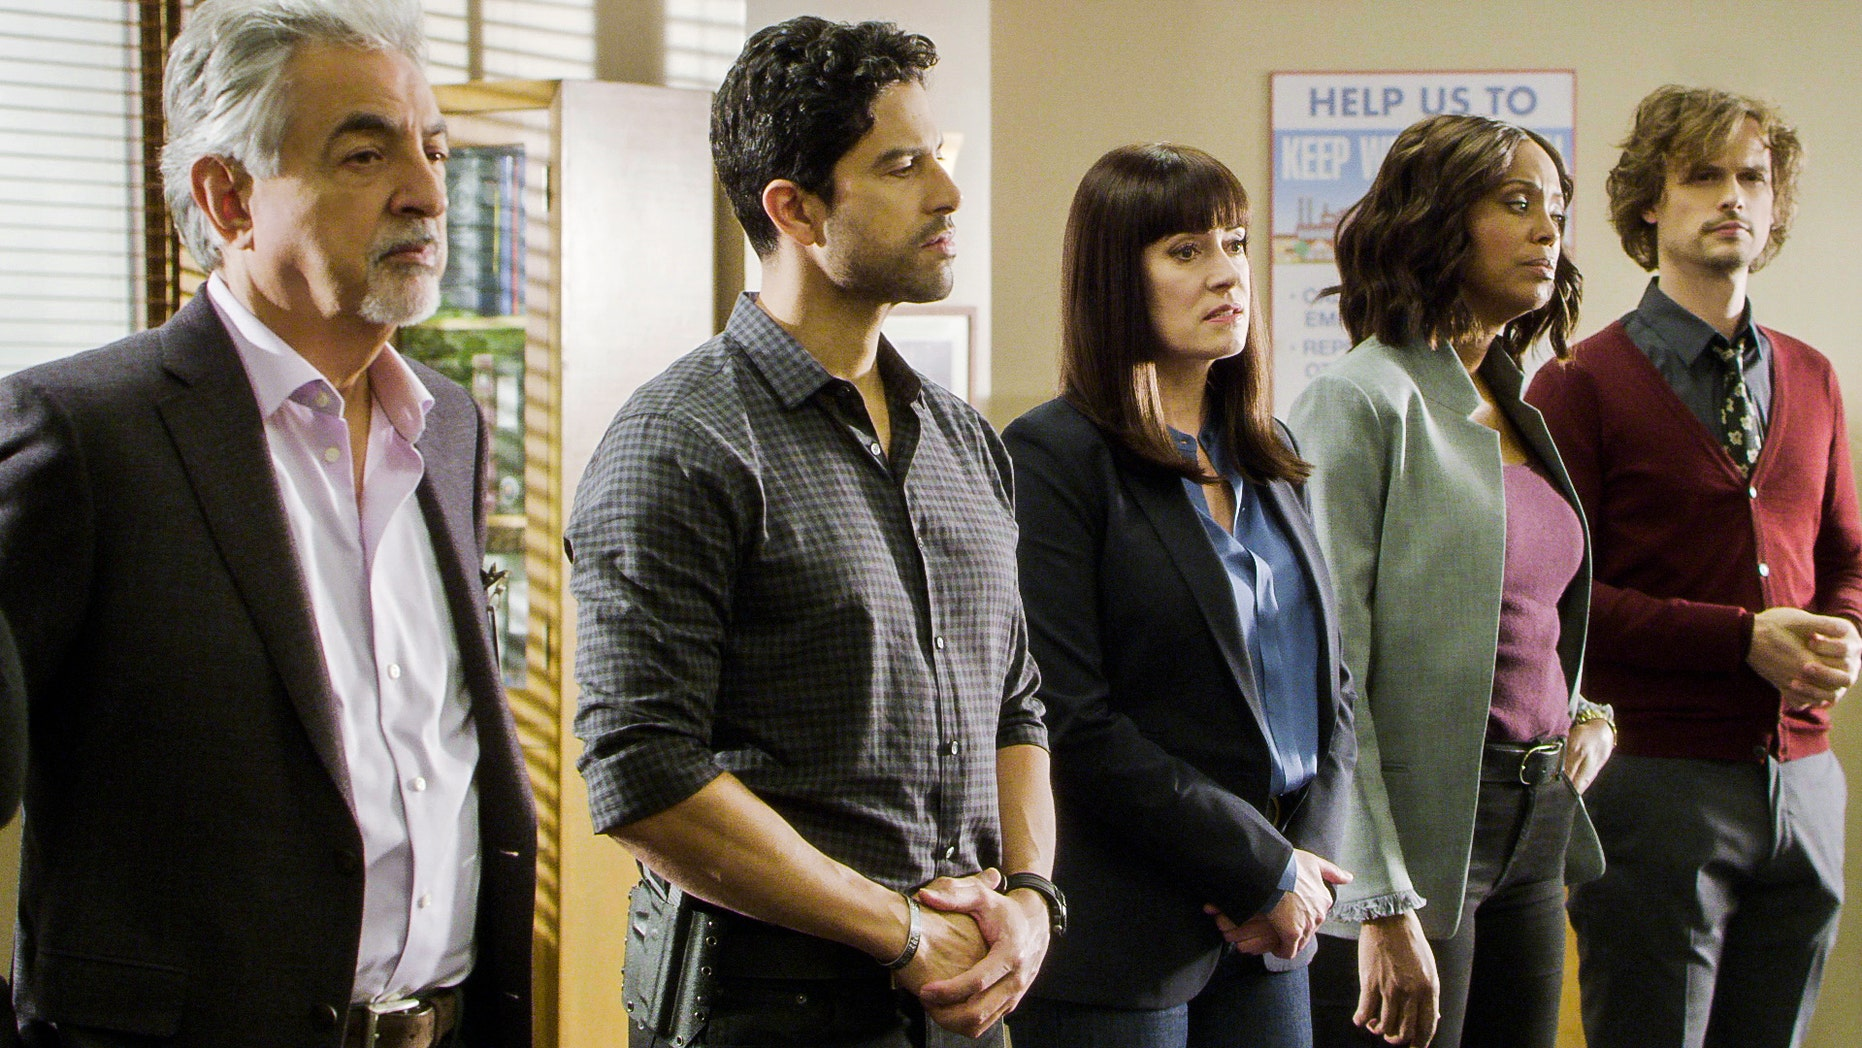 'Criminal Minds' will end after Season 15, which will begin production immediately after Season 14.